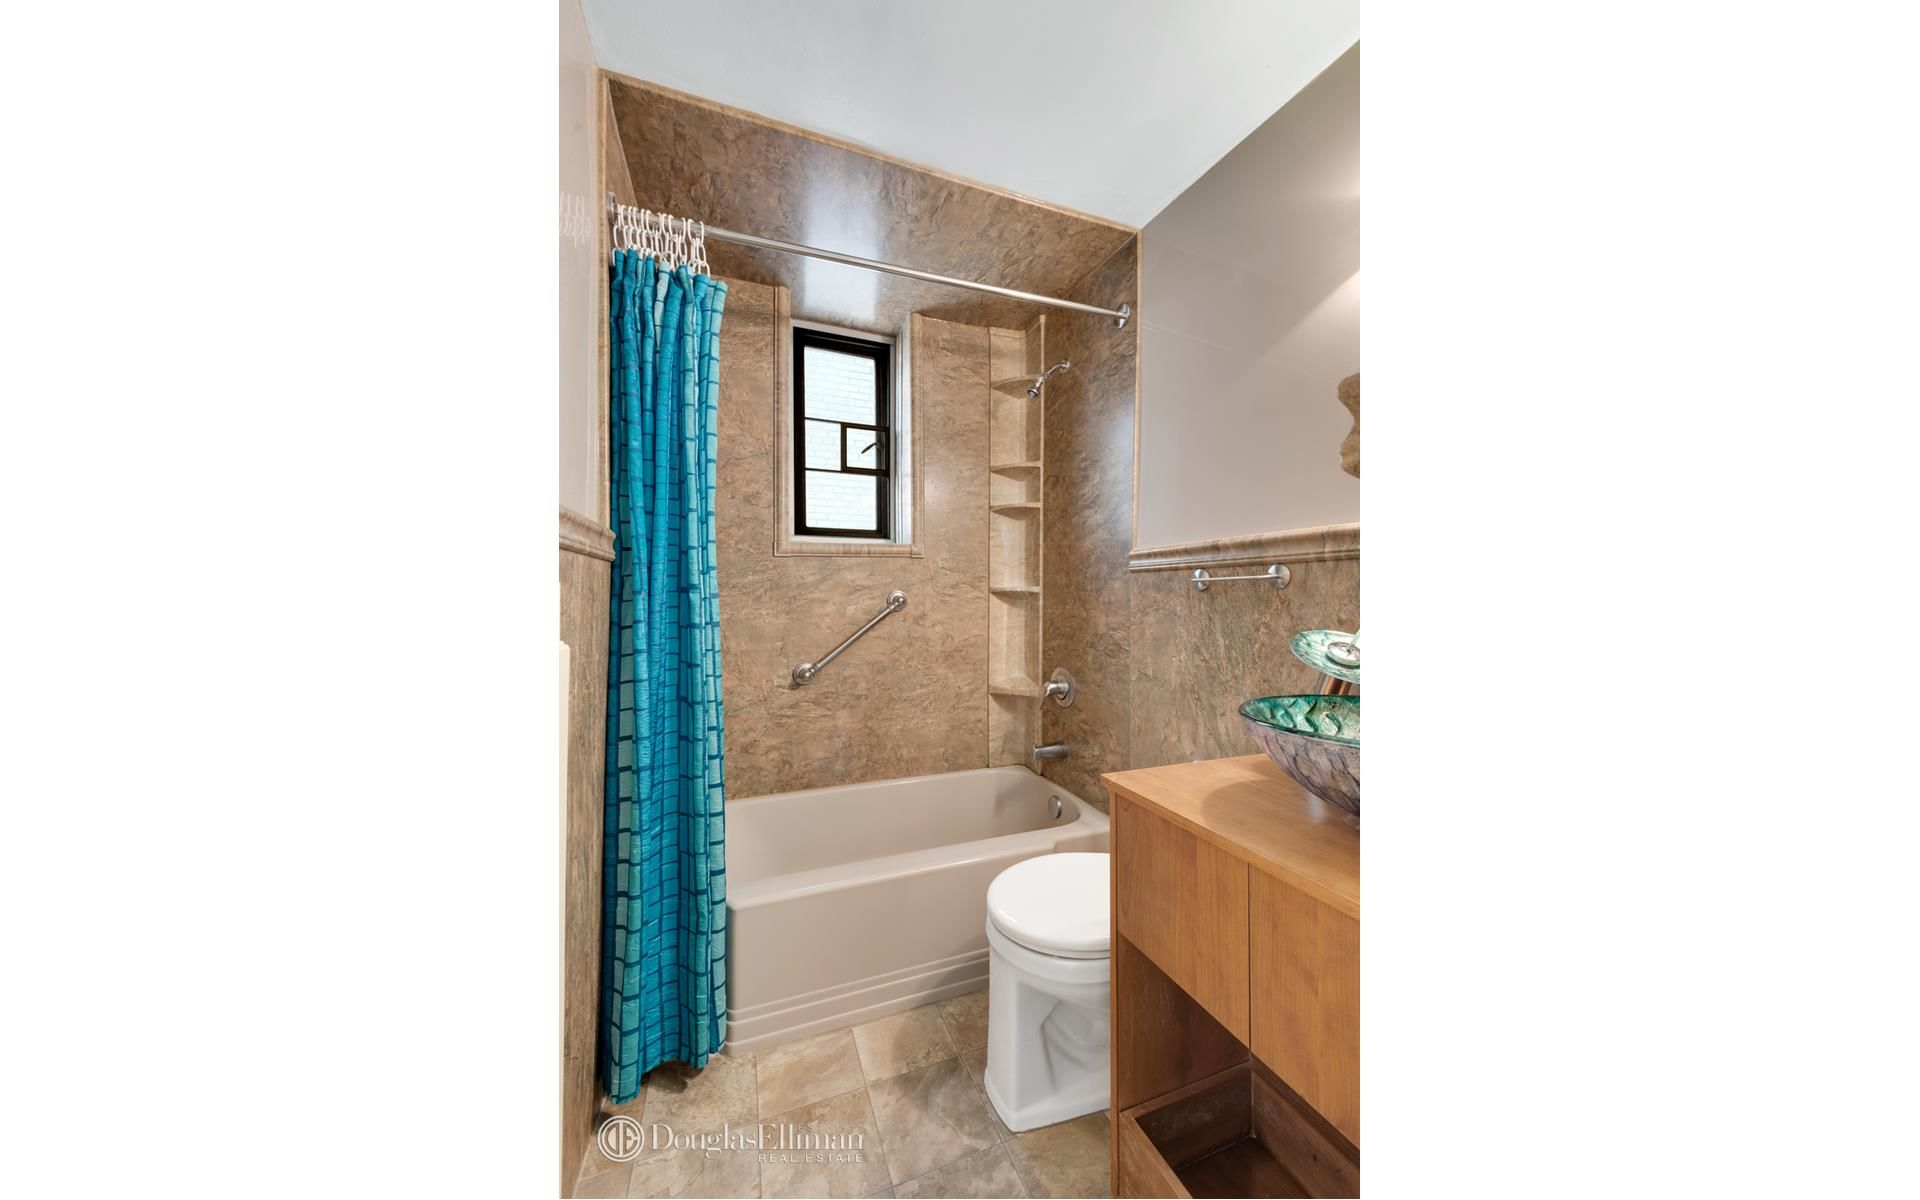 130 8th Ave, APT 2A Photo 4 - ELLIMAN-3787631